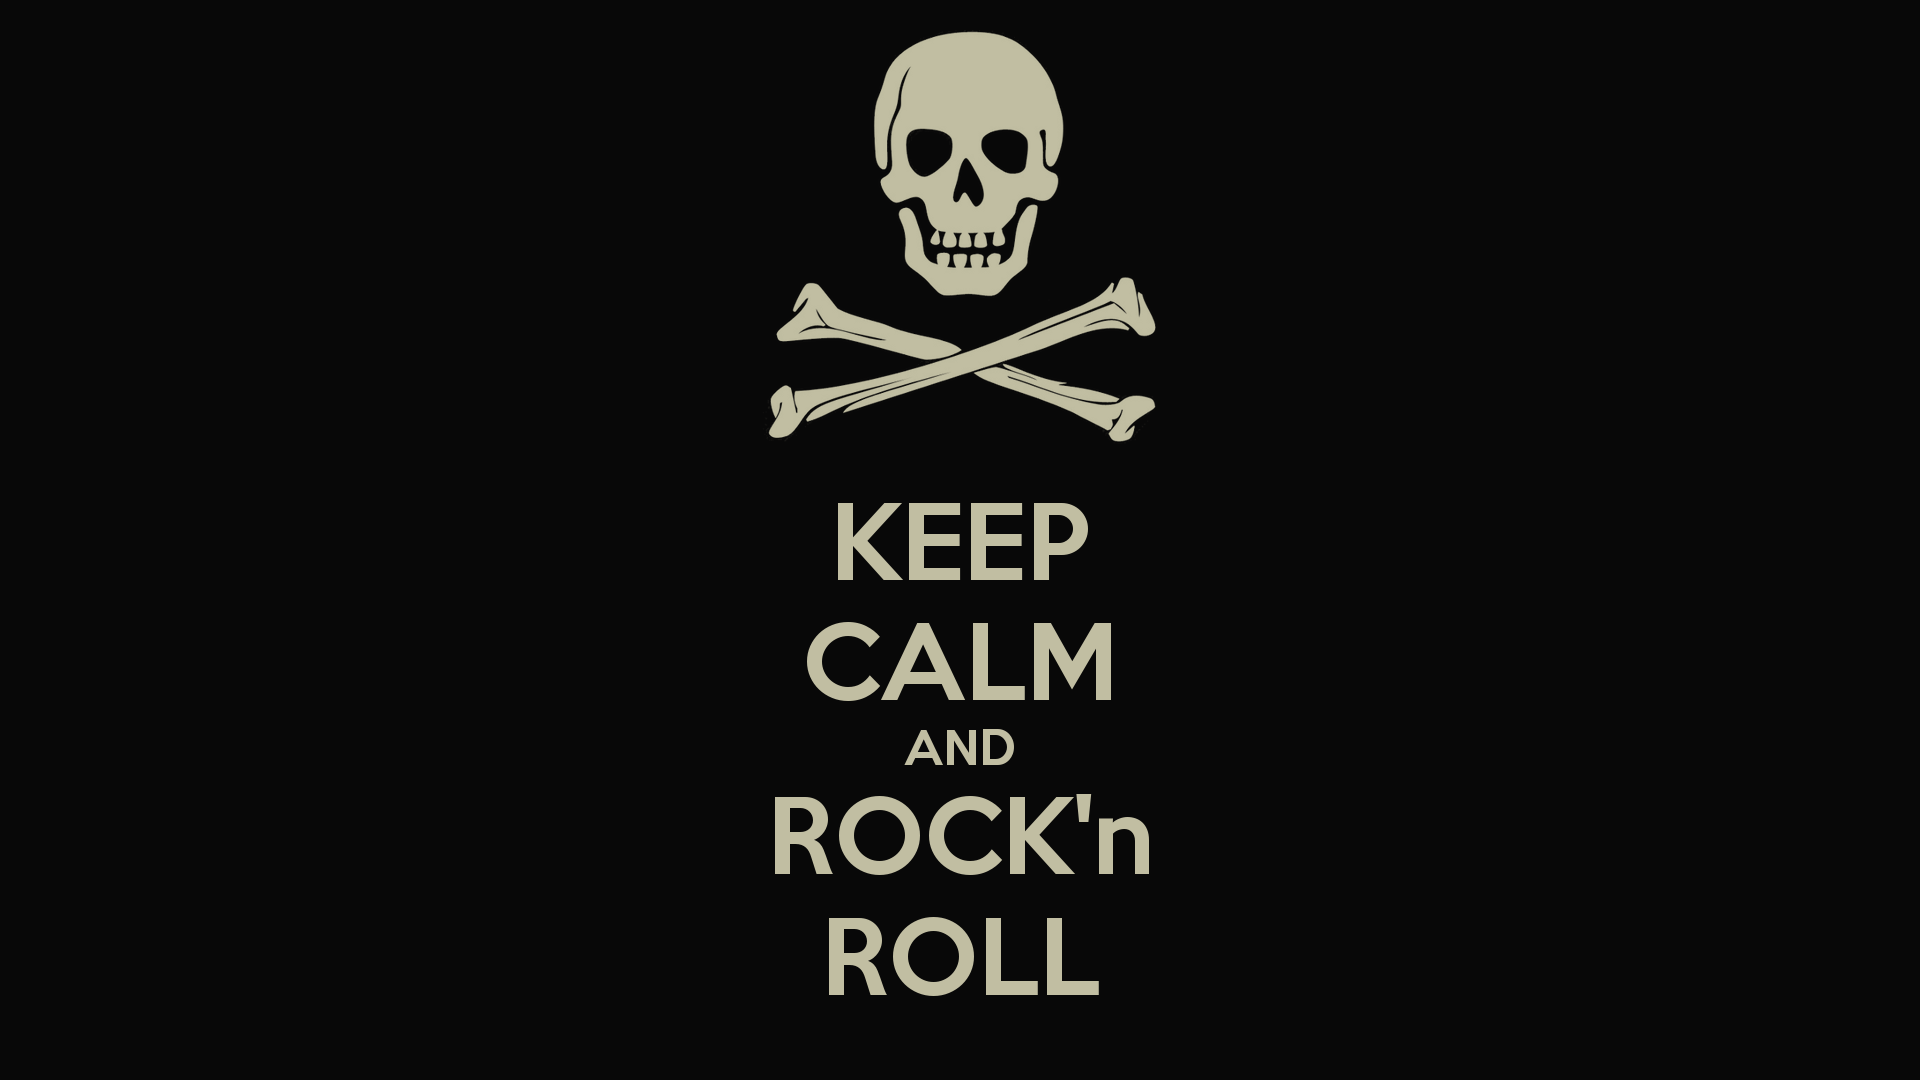 Photos rock n roll wallpaper page 2 1920x1080